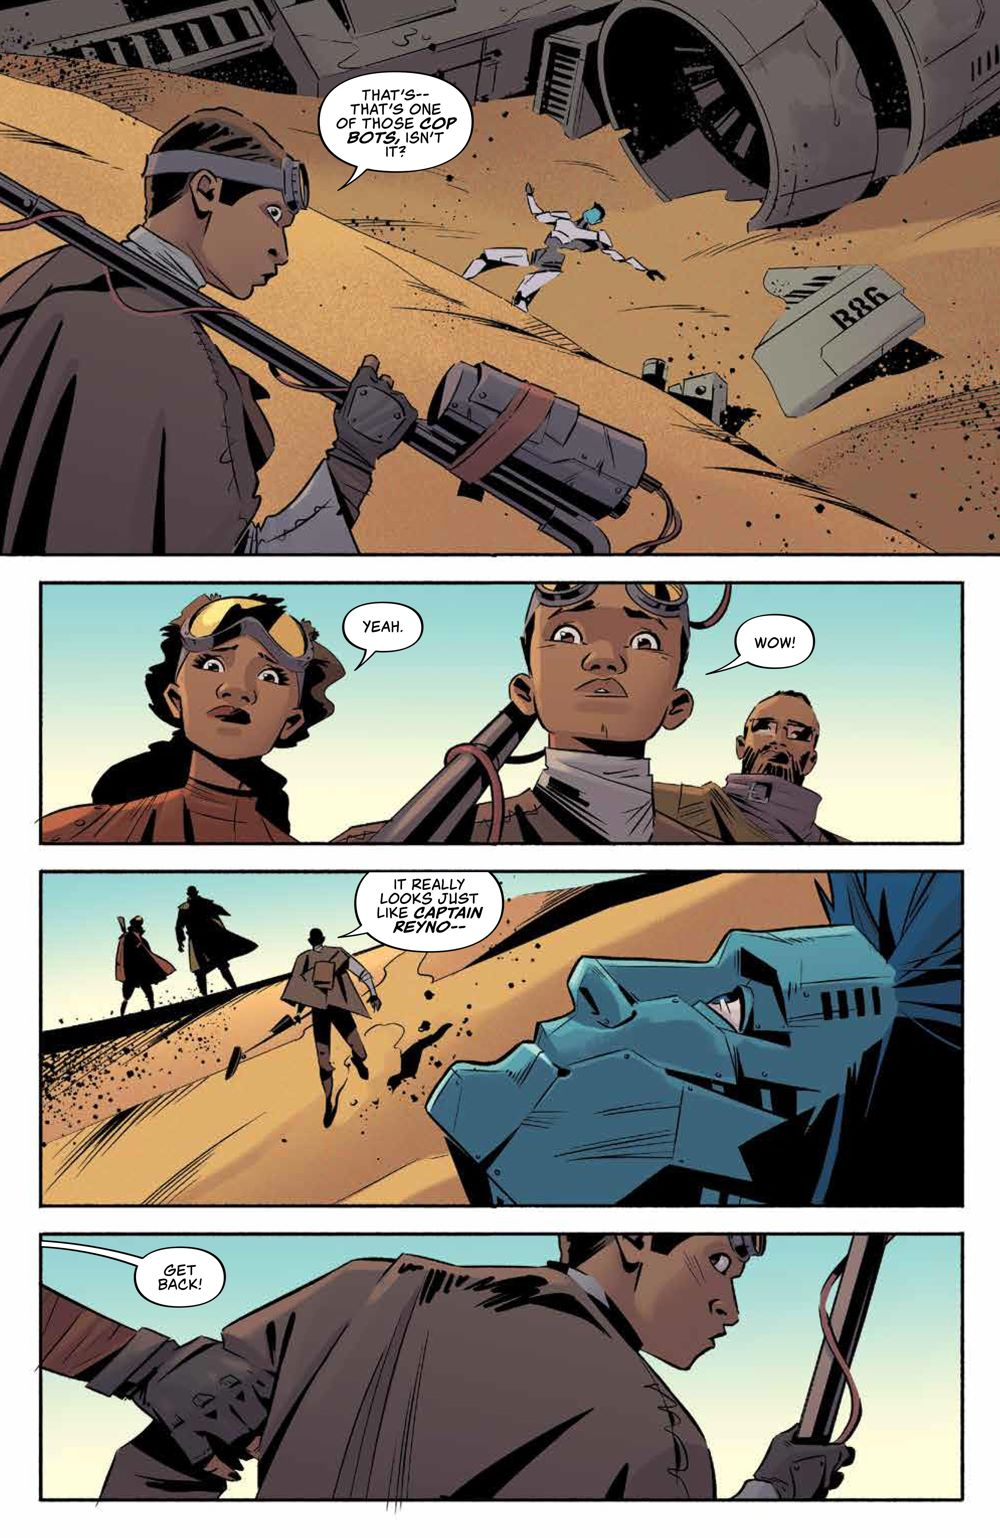 Firefly_ReturnToEarth_v1_HC_PRESS_10 ComicList Previews: FIREFLY RETURN TO THE EARTH THAT WAS VOLUME 1 HC